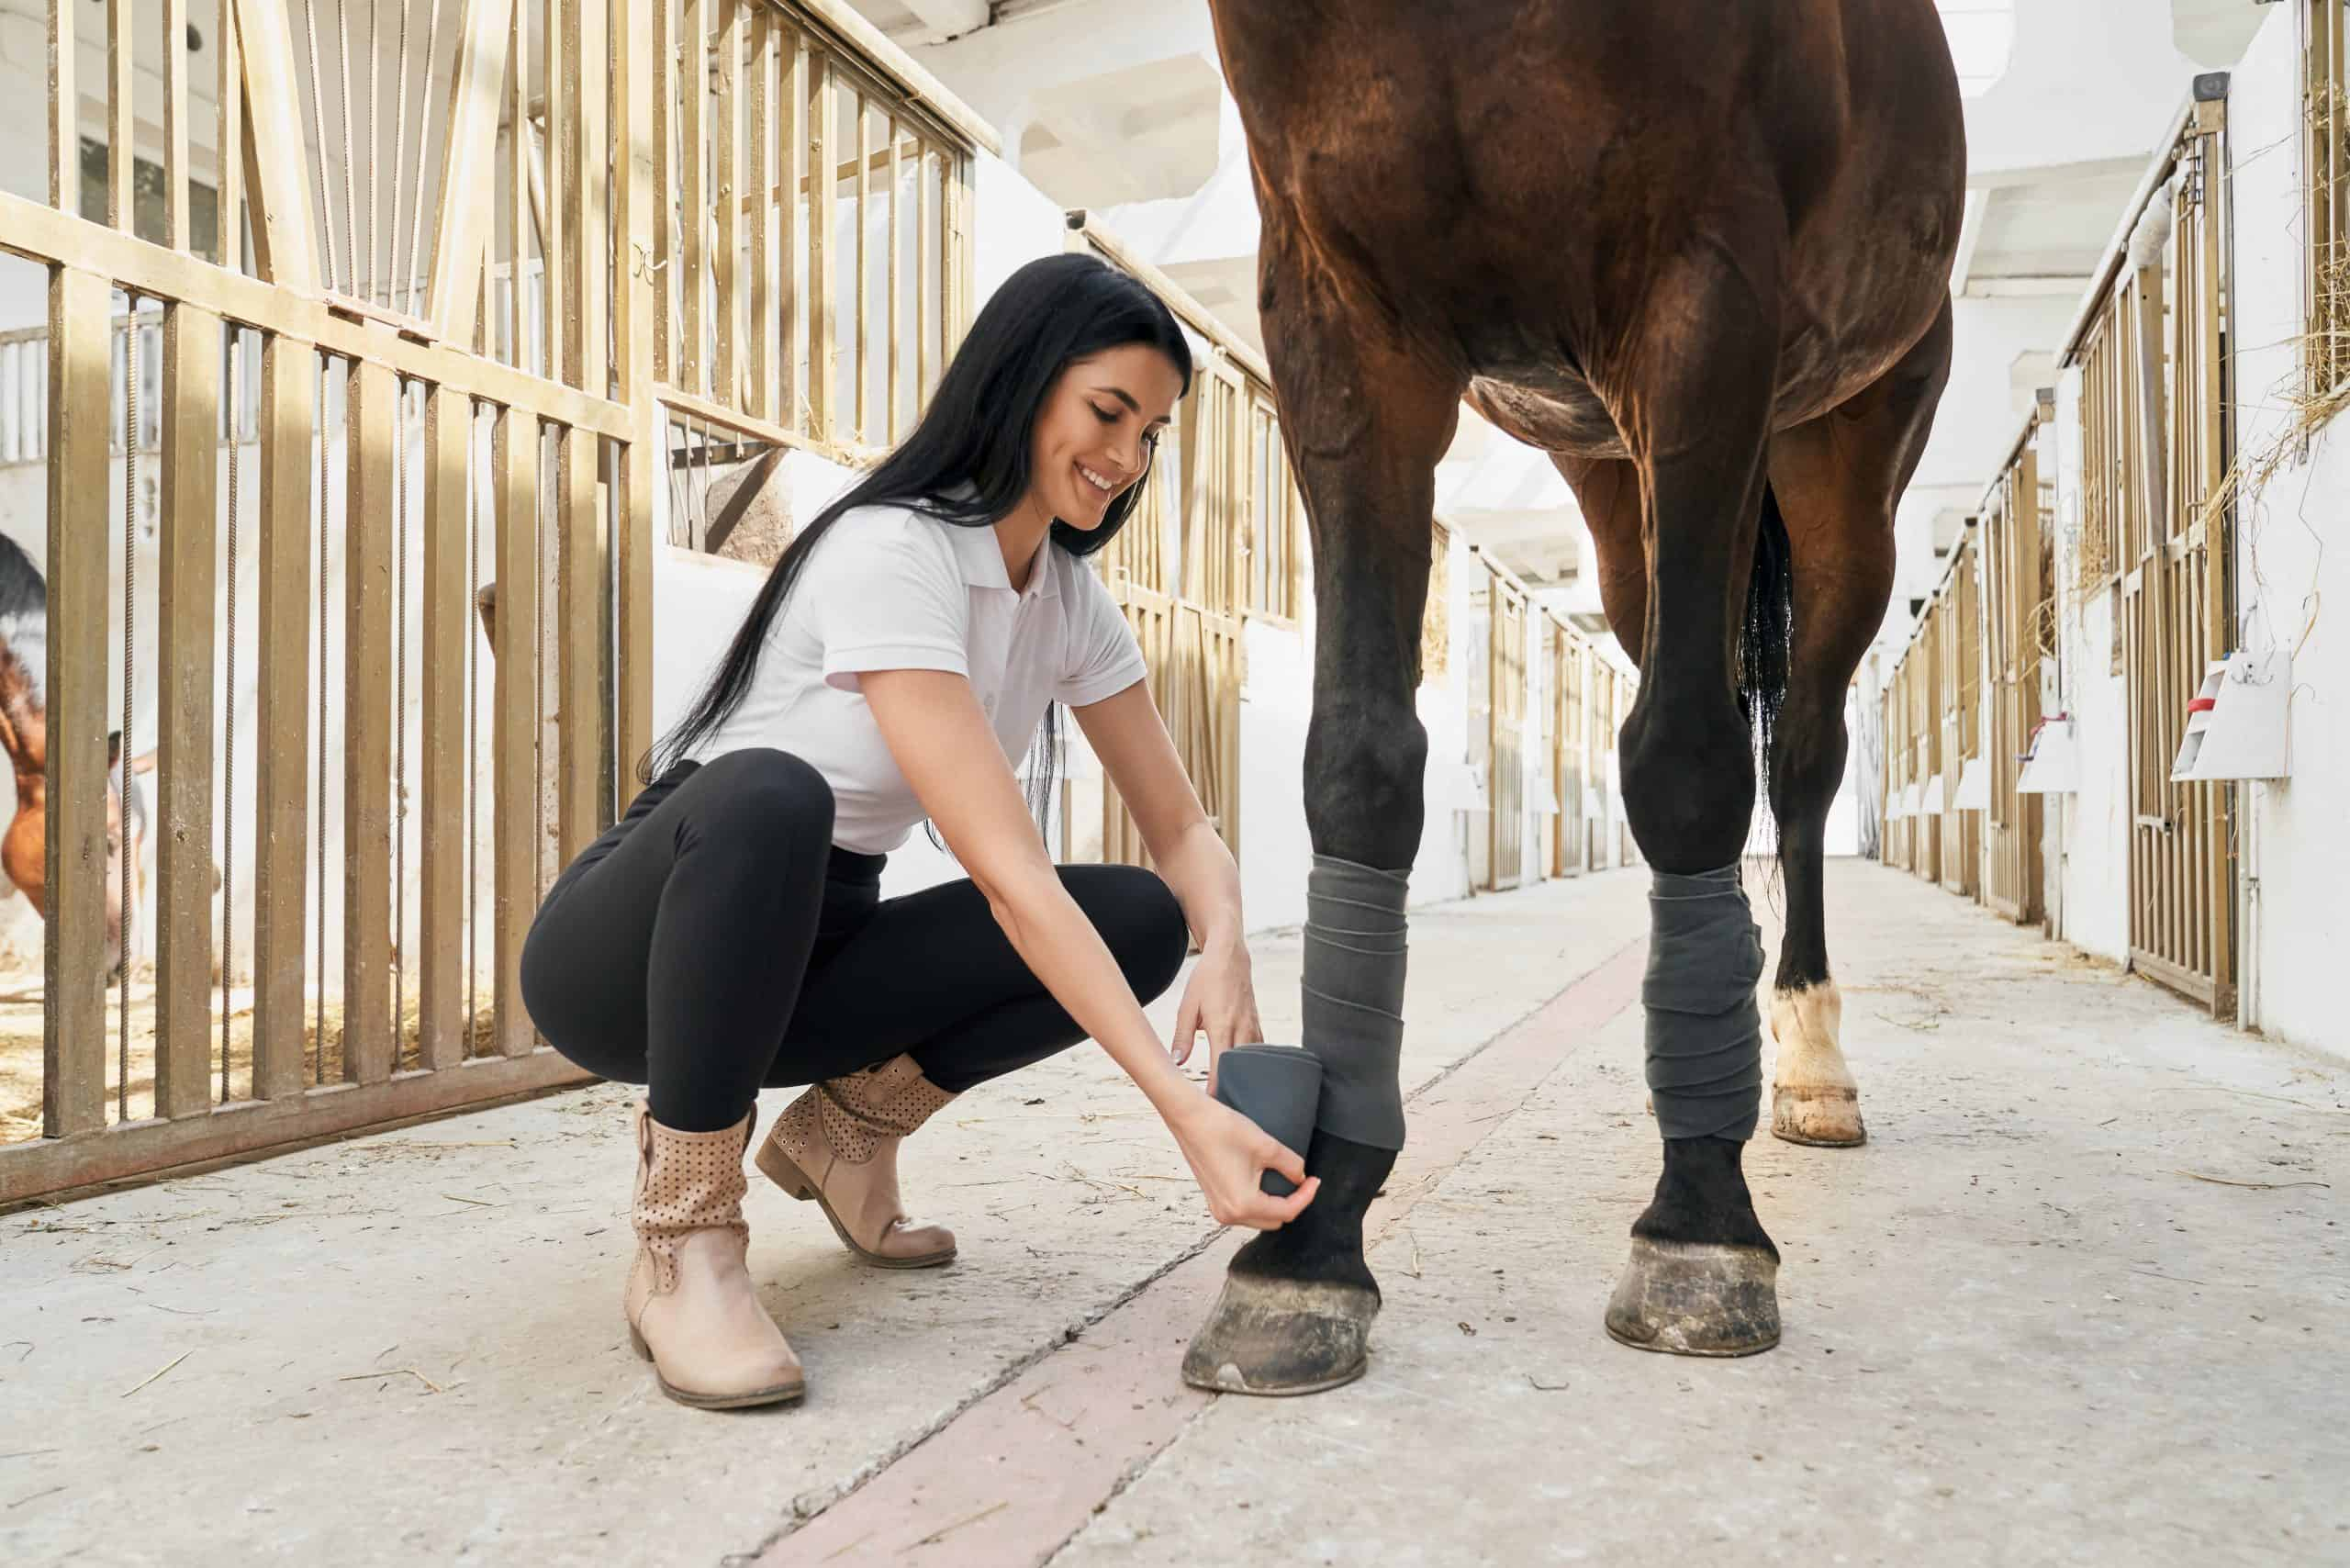 Cheerful woman with long dark hair putting grey bandages on purebred stallion legs to protect from injuries during riding. Concept of animal caring